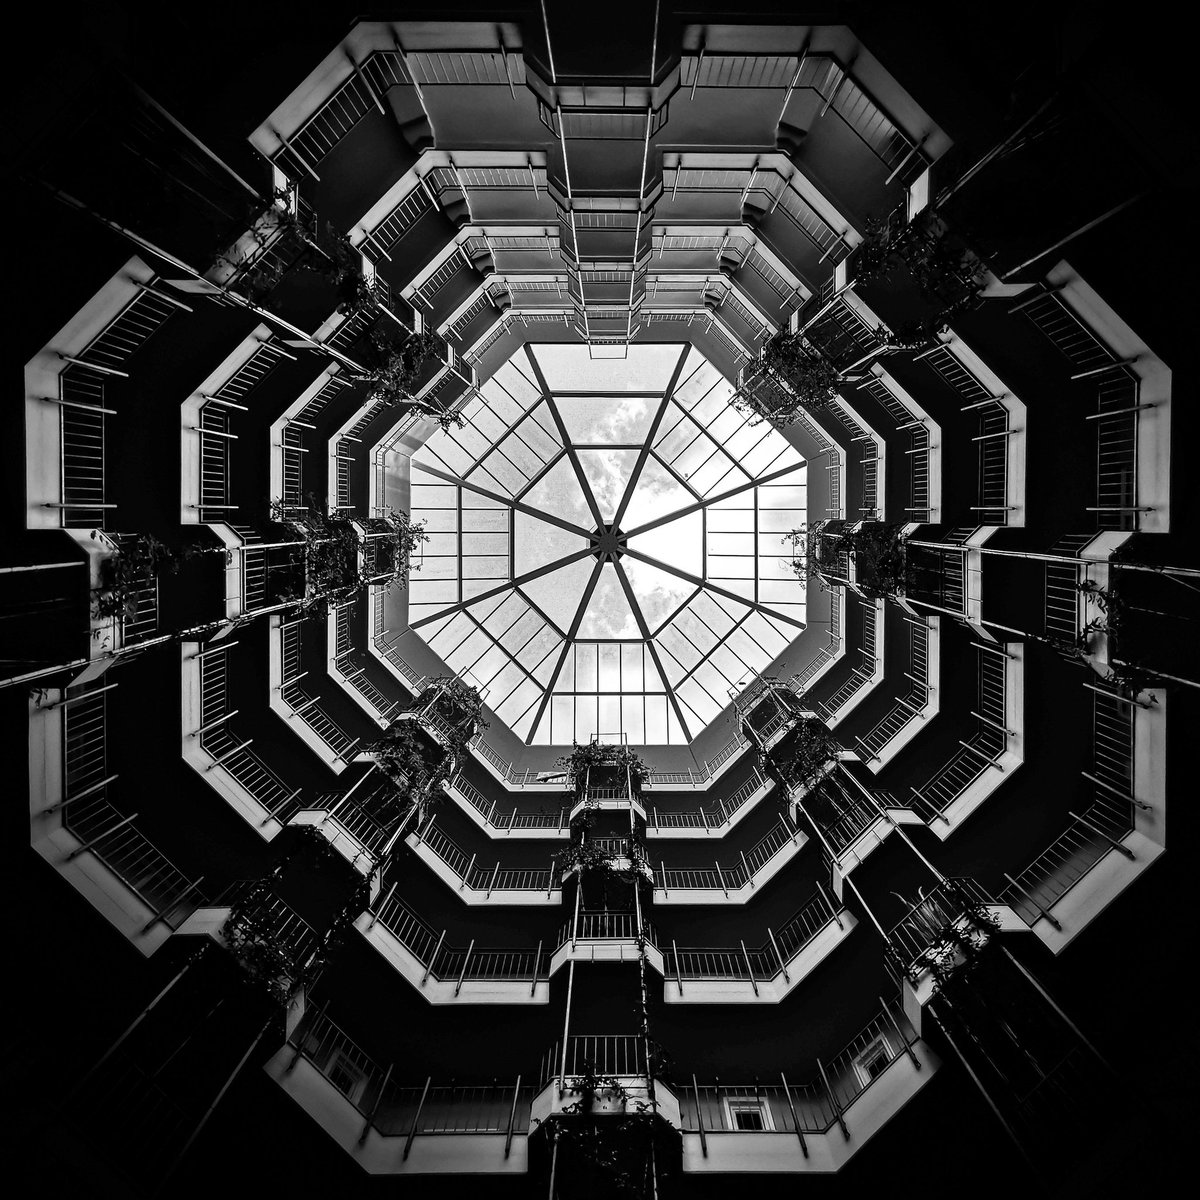 Built in 1984 by the architect Gottfried Böhm - today under monument protection.   #blackandwhitephotography #blackandwhite #architecture #streetphotography #visit_berlin #Berlin #stayhealthypic.twitter.com/XzrZEtjHTj